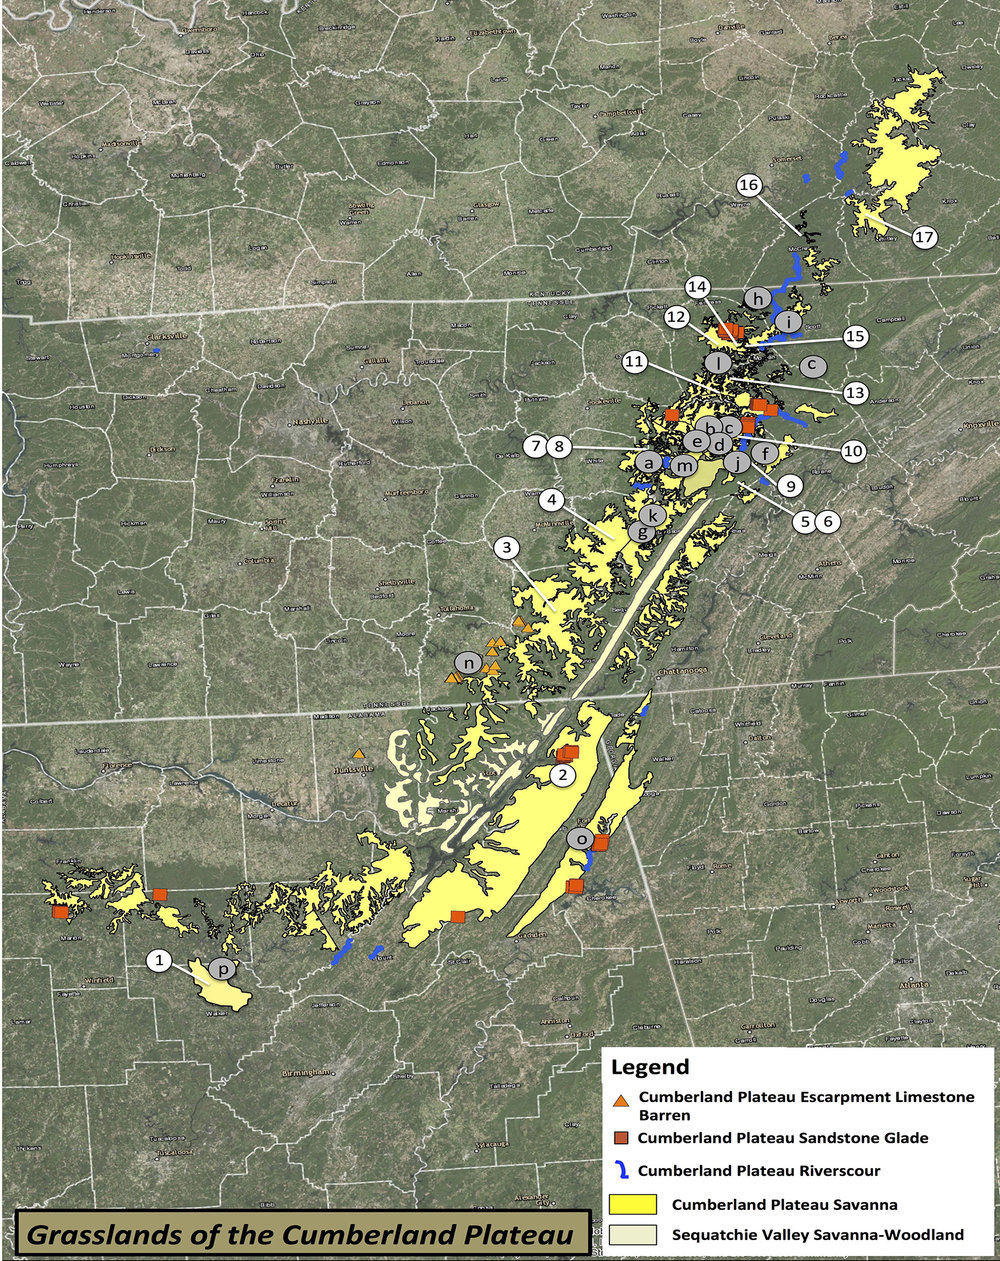 The historical Cumberland Plateau Savanna ecosystem once extended from se. KY to nw. AL along the surface of the Plateau. It covered hundreds of thousands of acres and was dominated by shortleaf pine-post oak-little bluestem with wet swales, meadows, and rocky sandstone glades embedded throughout. Today, 95-99% of this ecosystem has disappeared, primarily due to fire suppression, end of open range for cattle grazing, and conversion of wet grasslands to farm ponds.